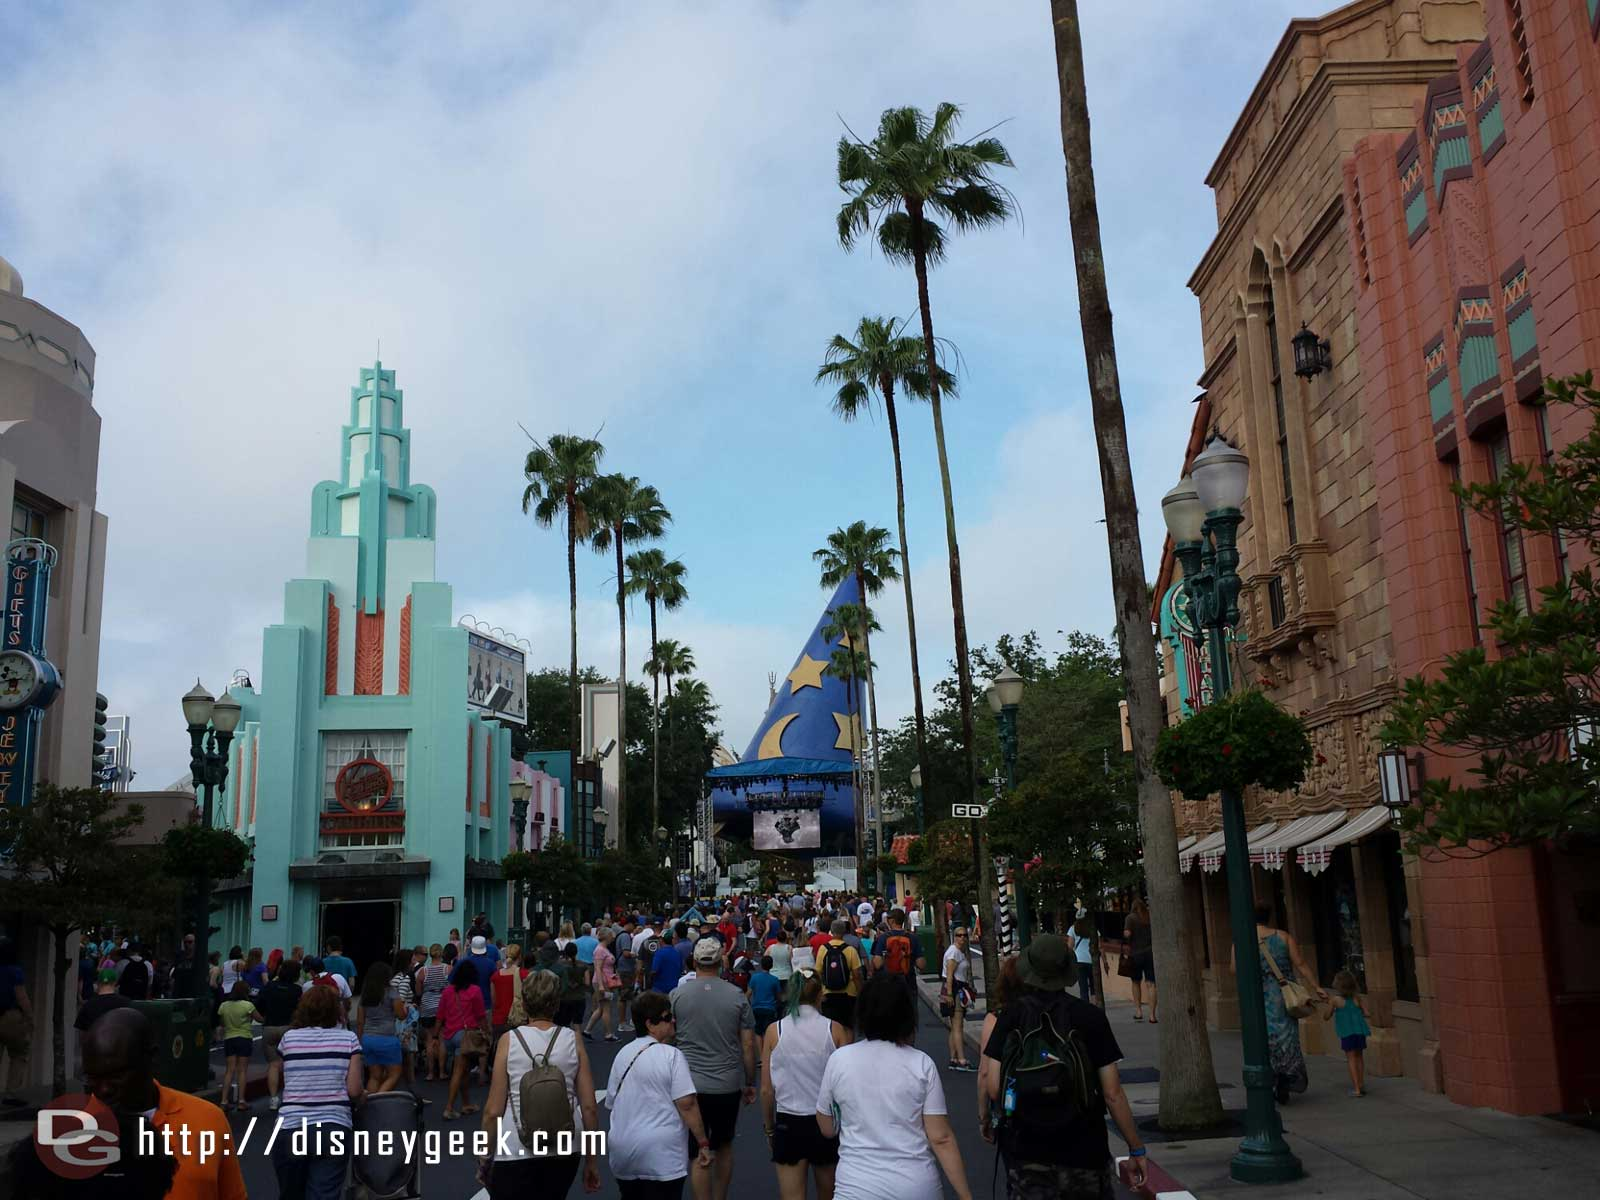 Hollywood Blvd – Disney's Hollywood Studios